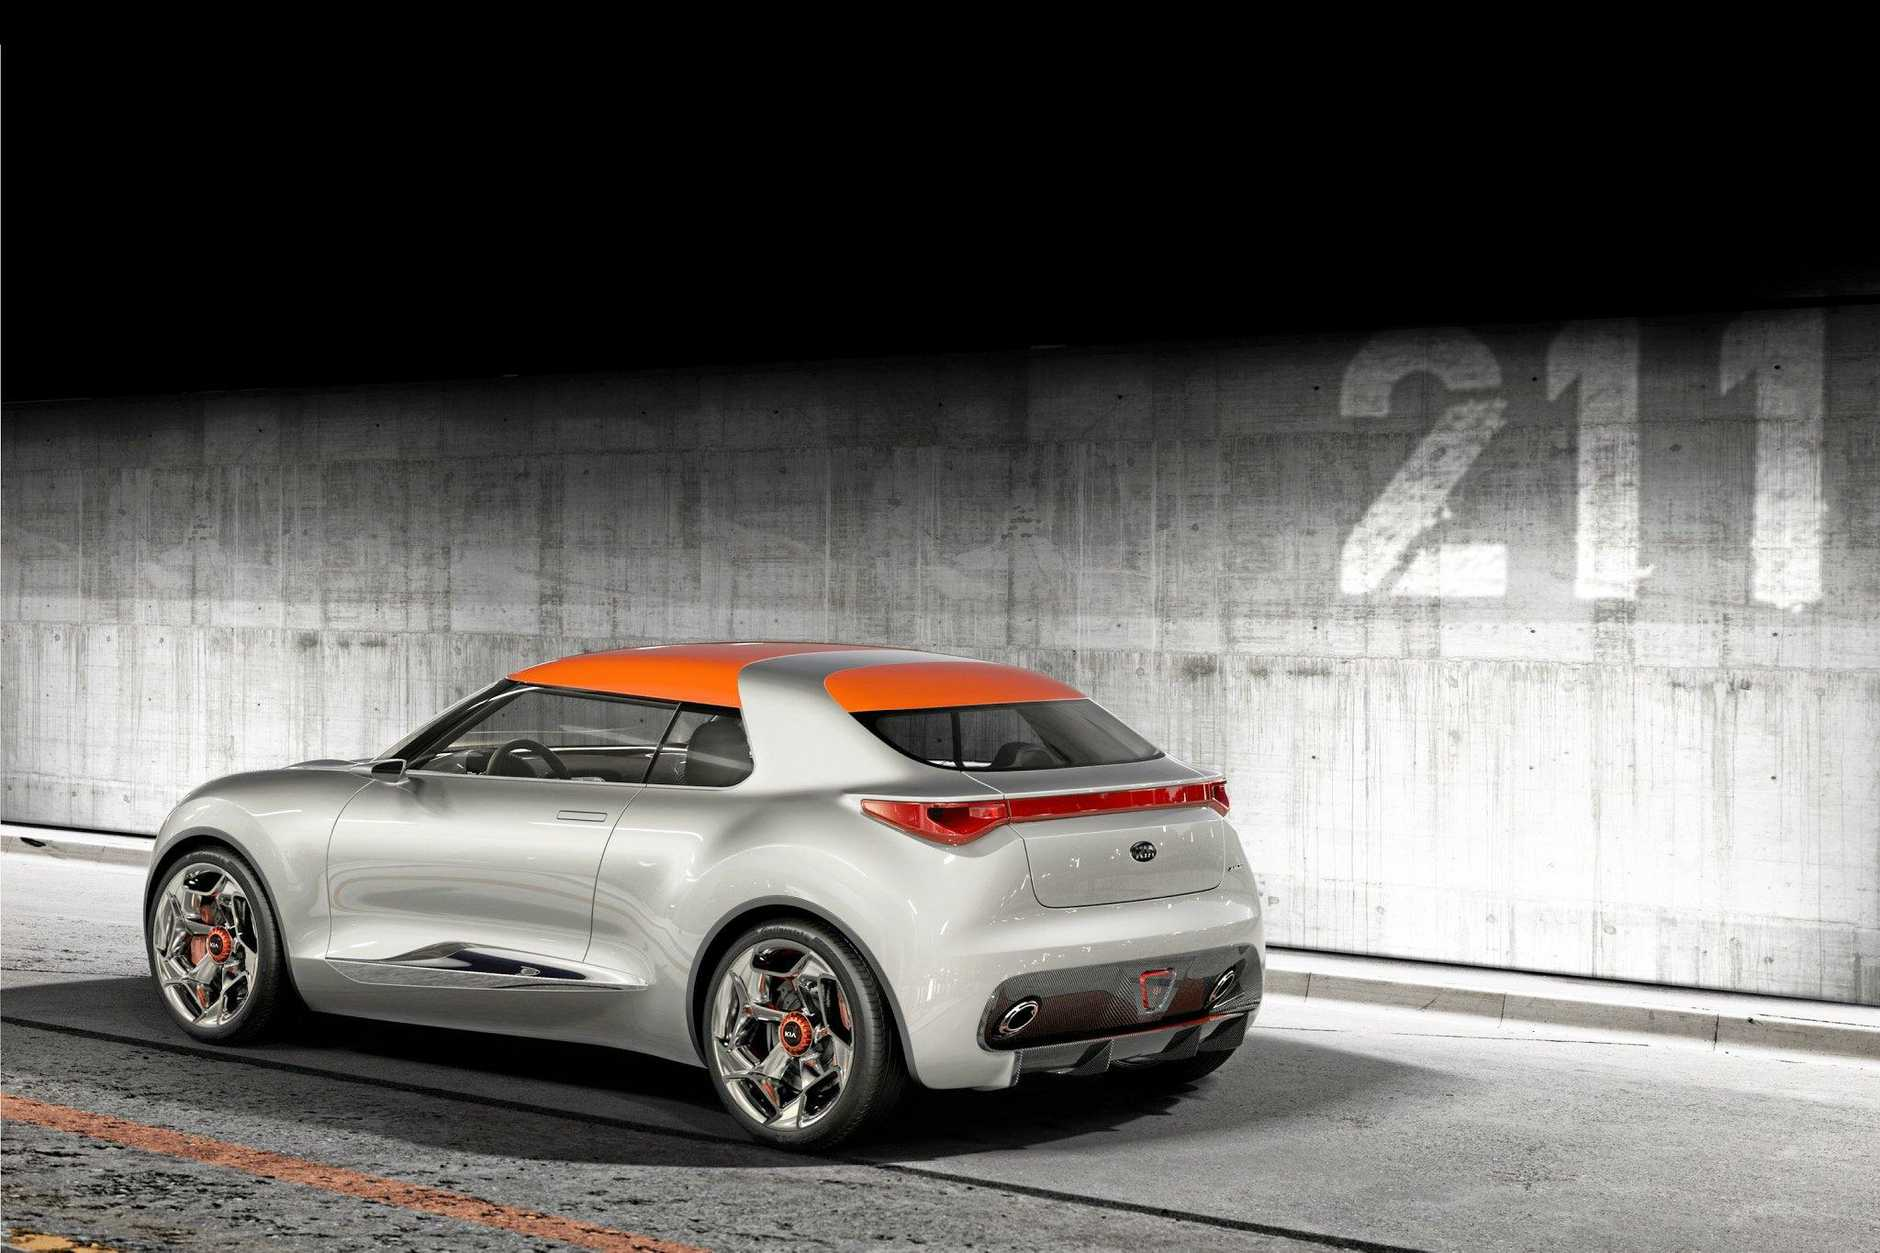 The Kia Provo concept car.